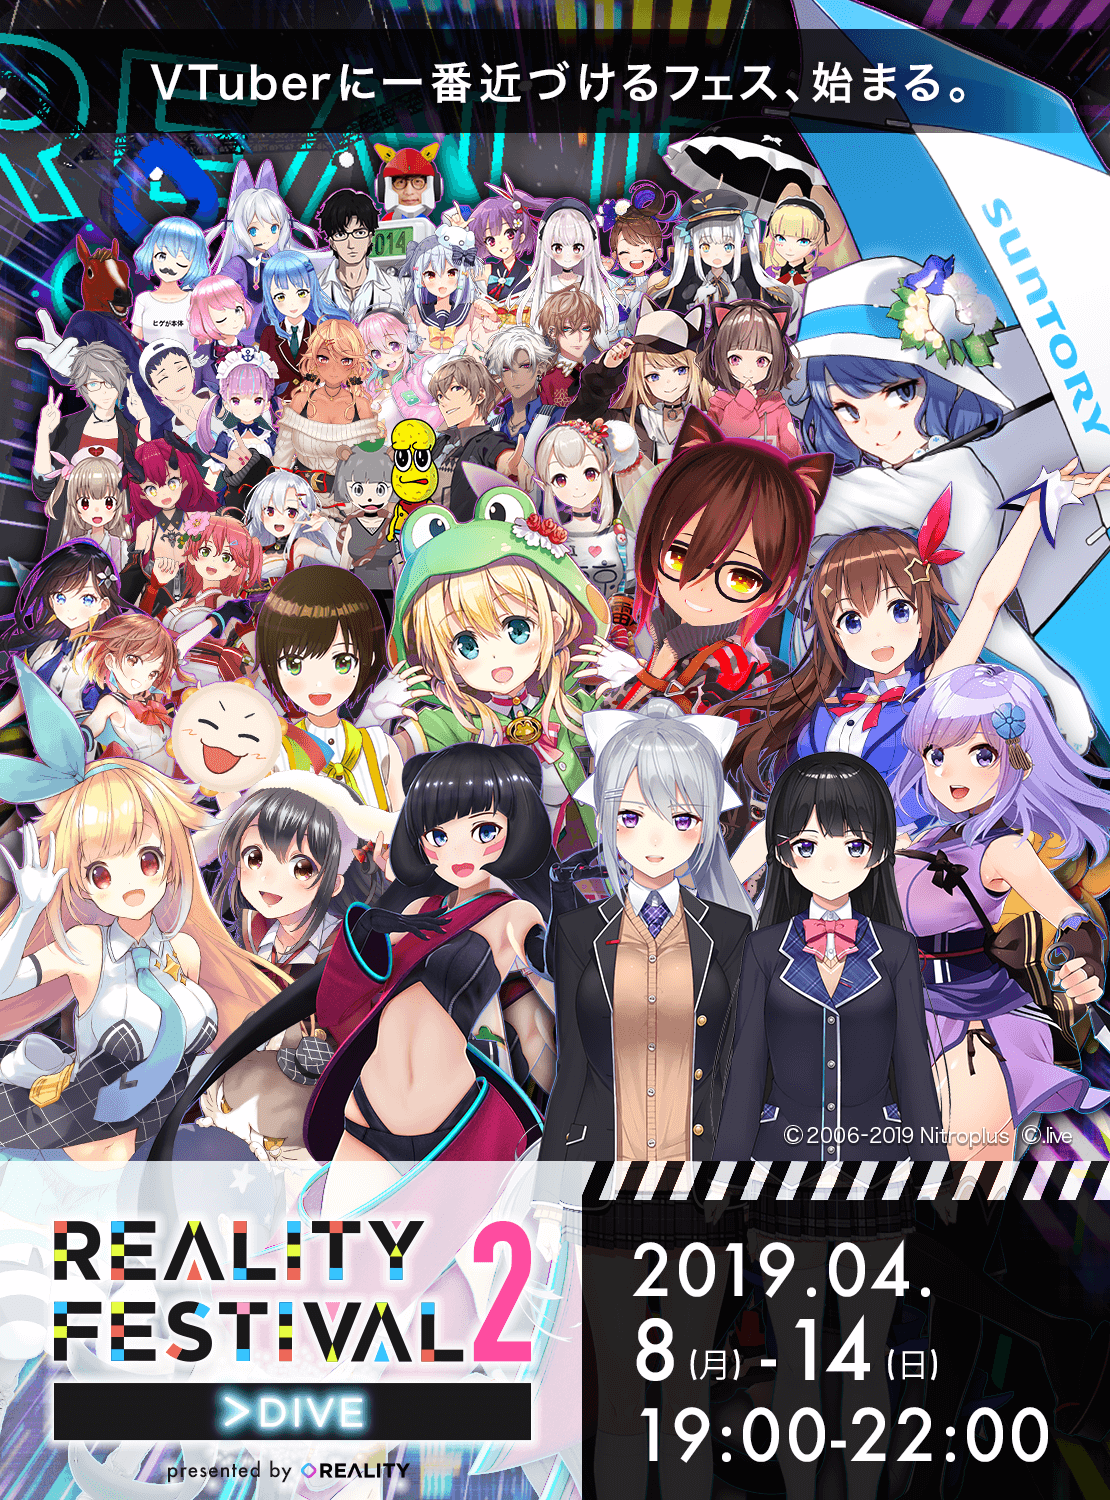 REALITY FESTIVAL2 DIVEのスマホ用トップイメージ